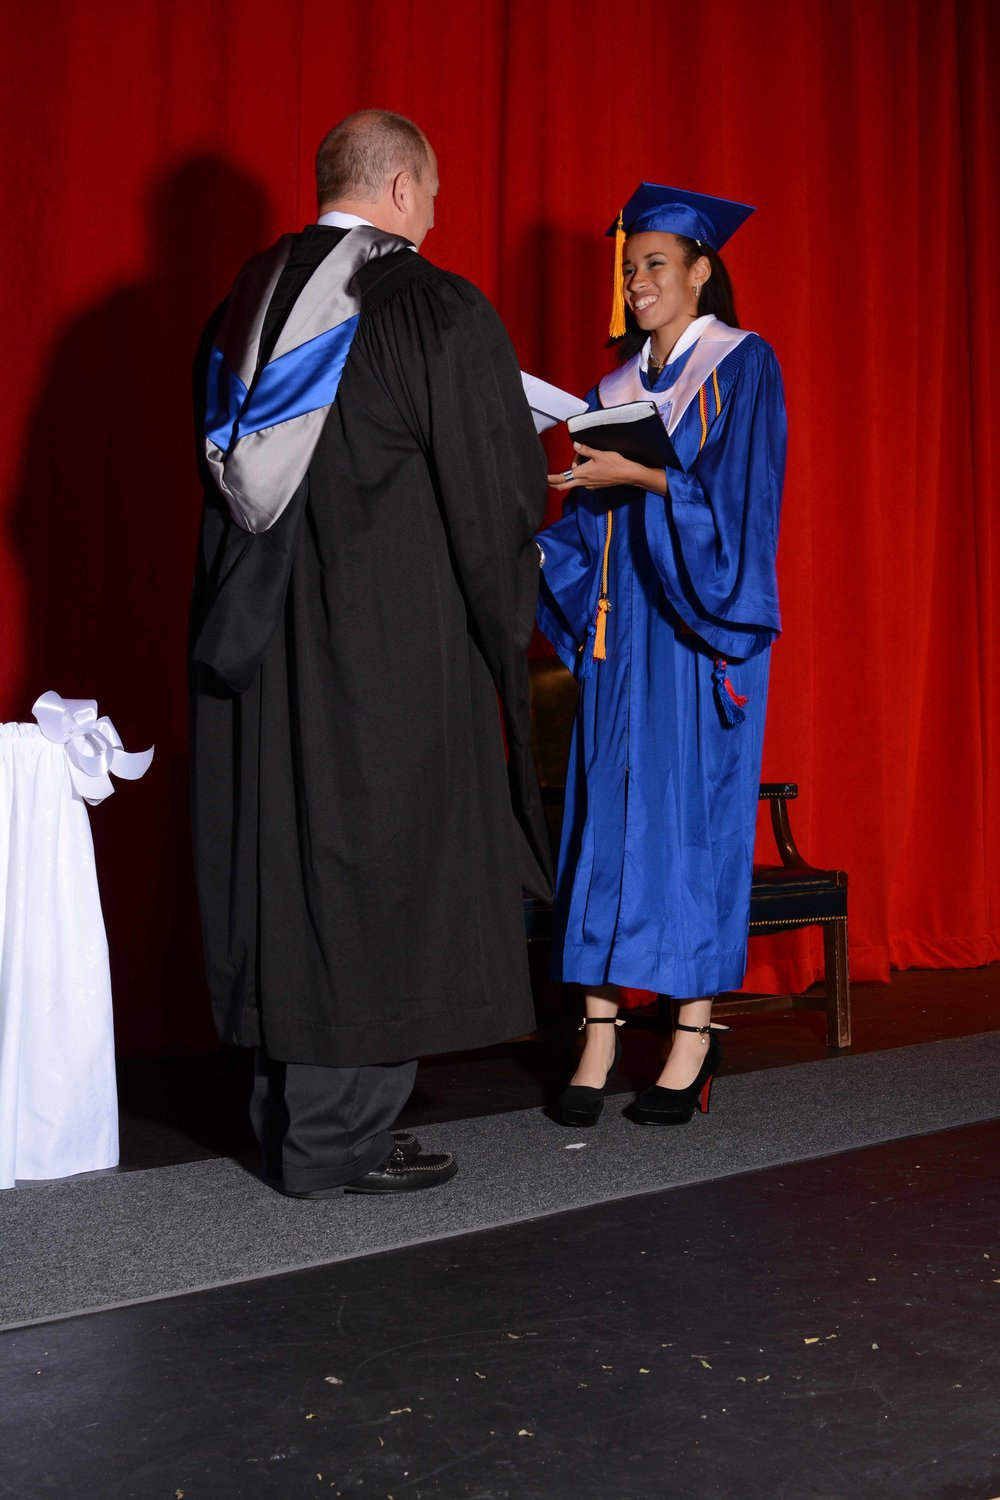 May15 HardingGraduation97.jpg